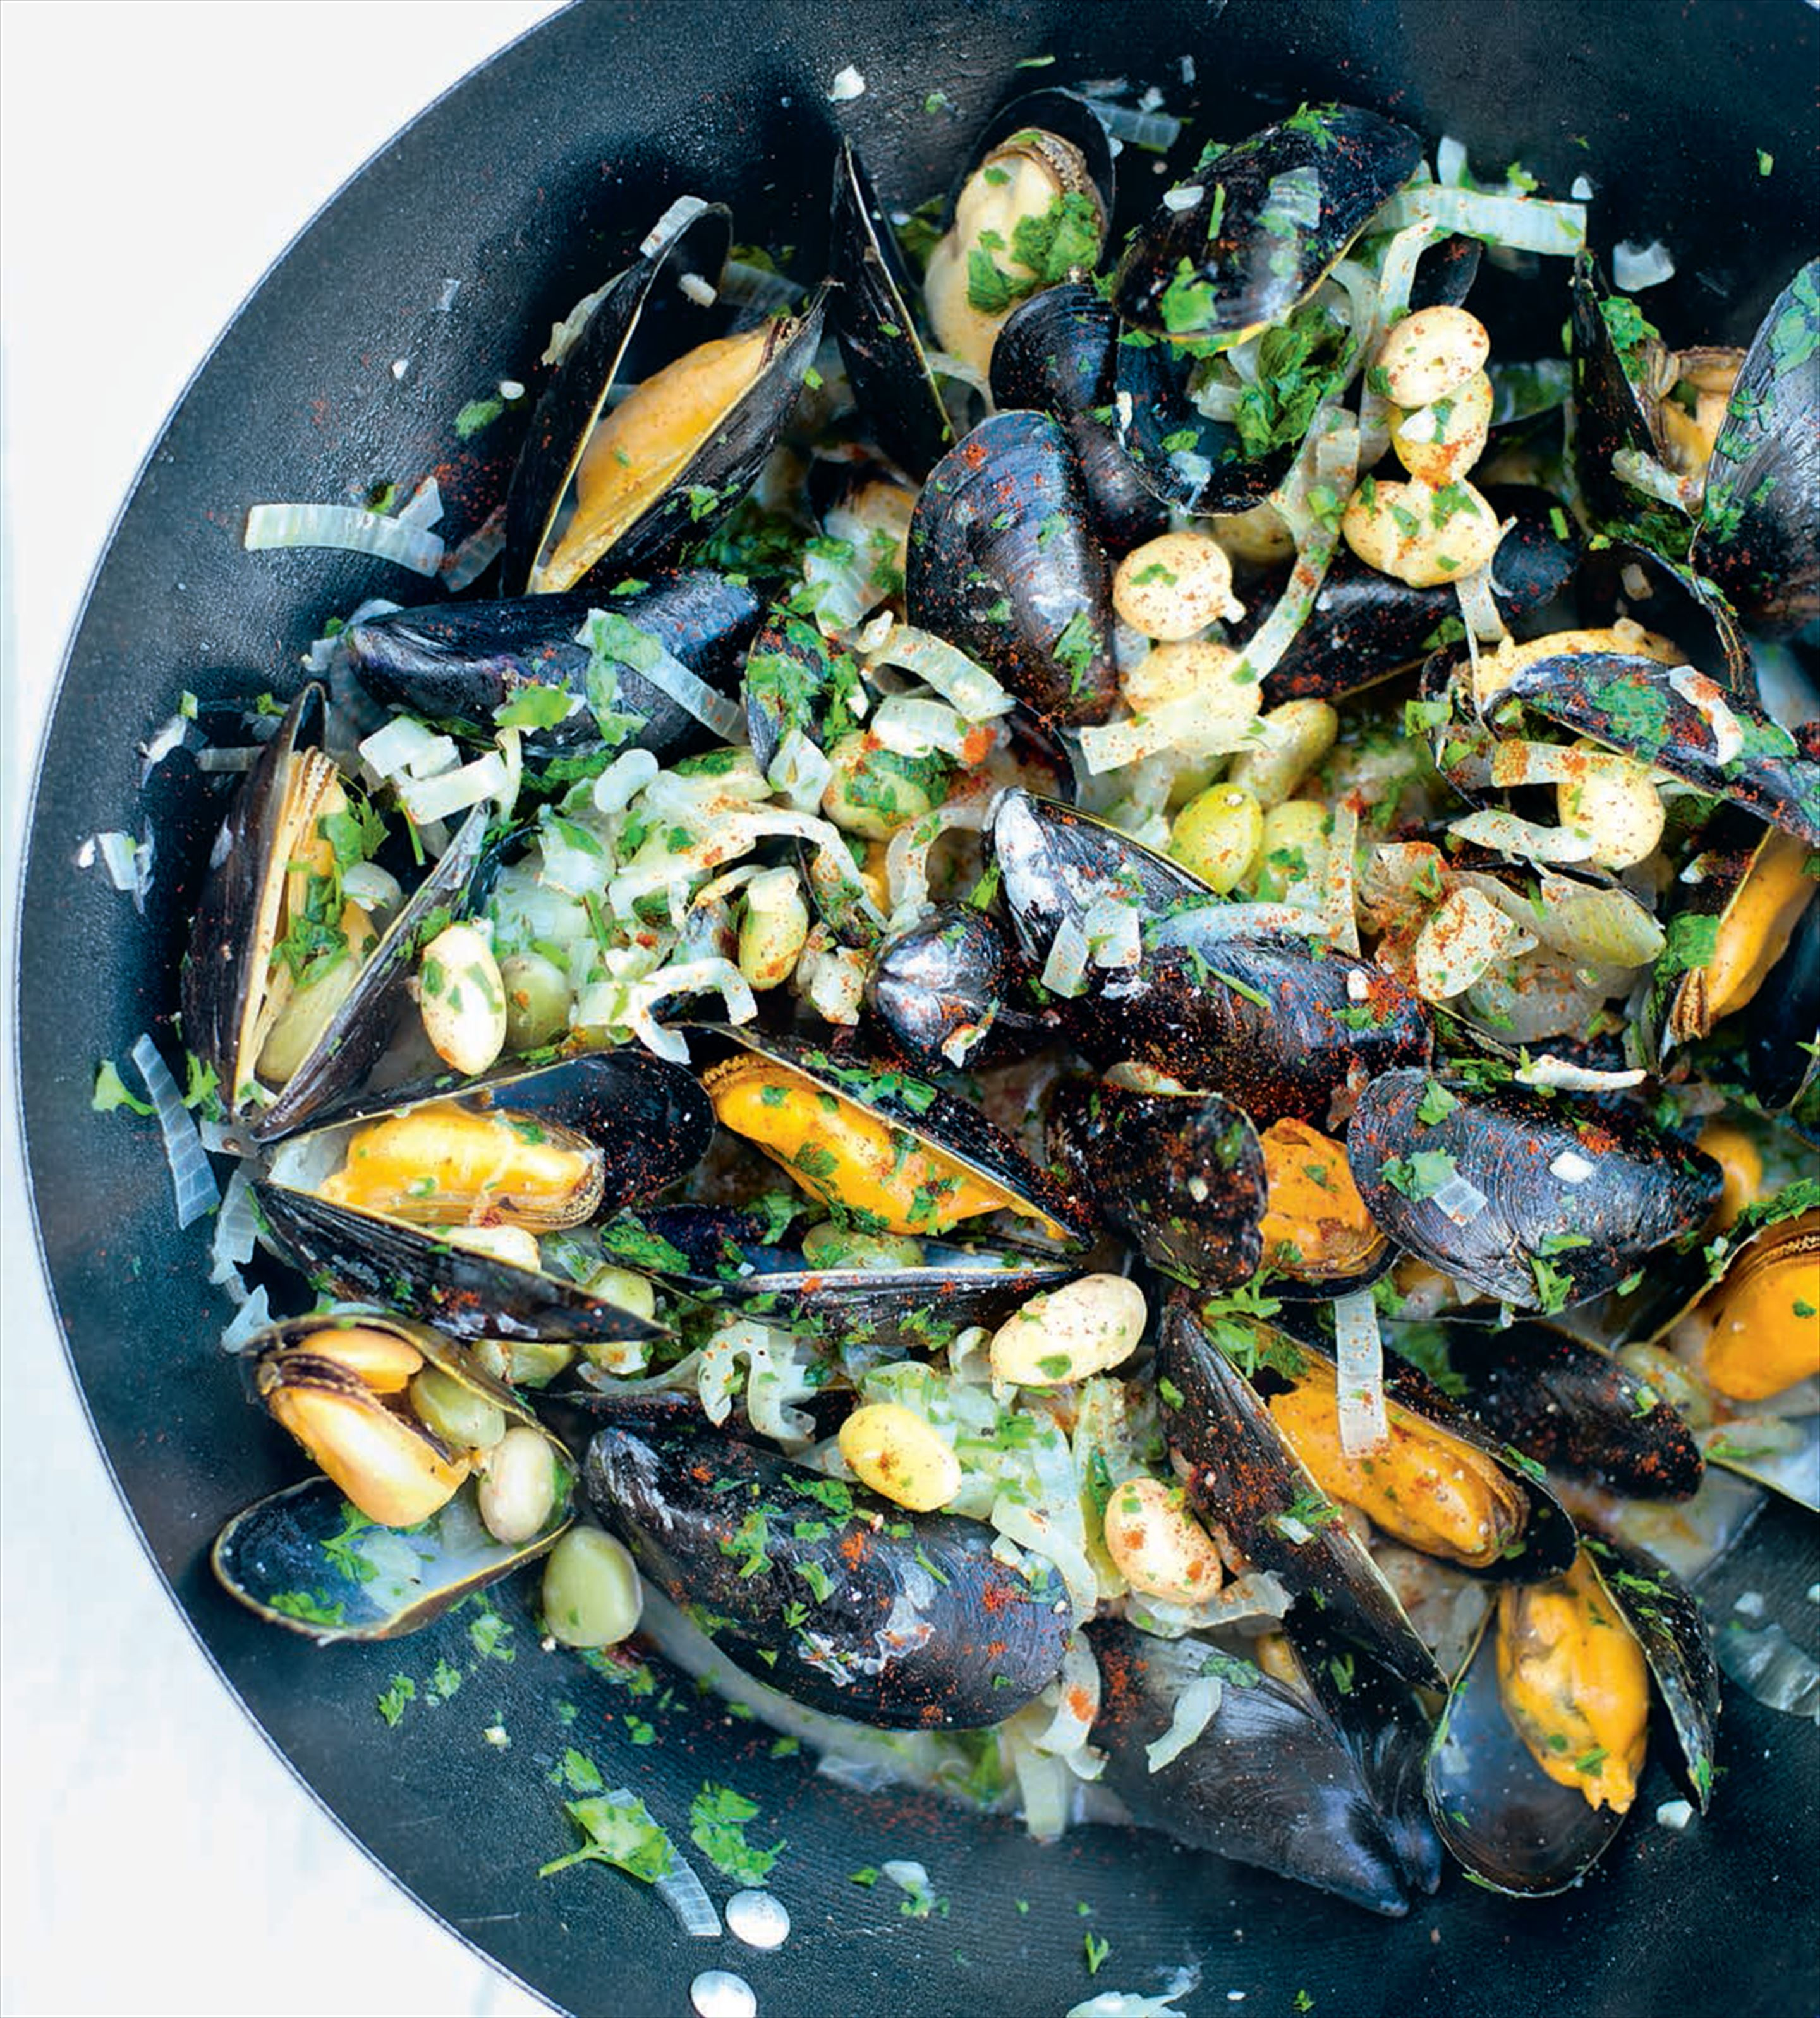 Borlottis with mussels